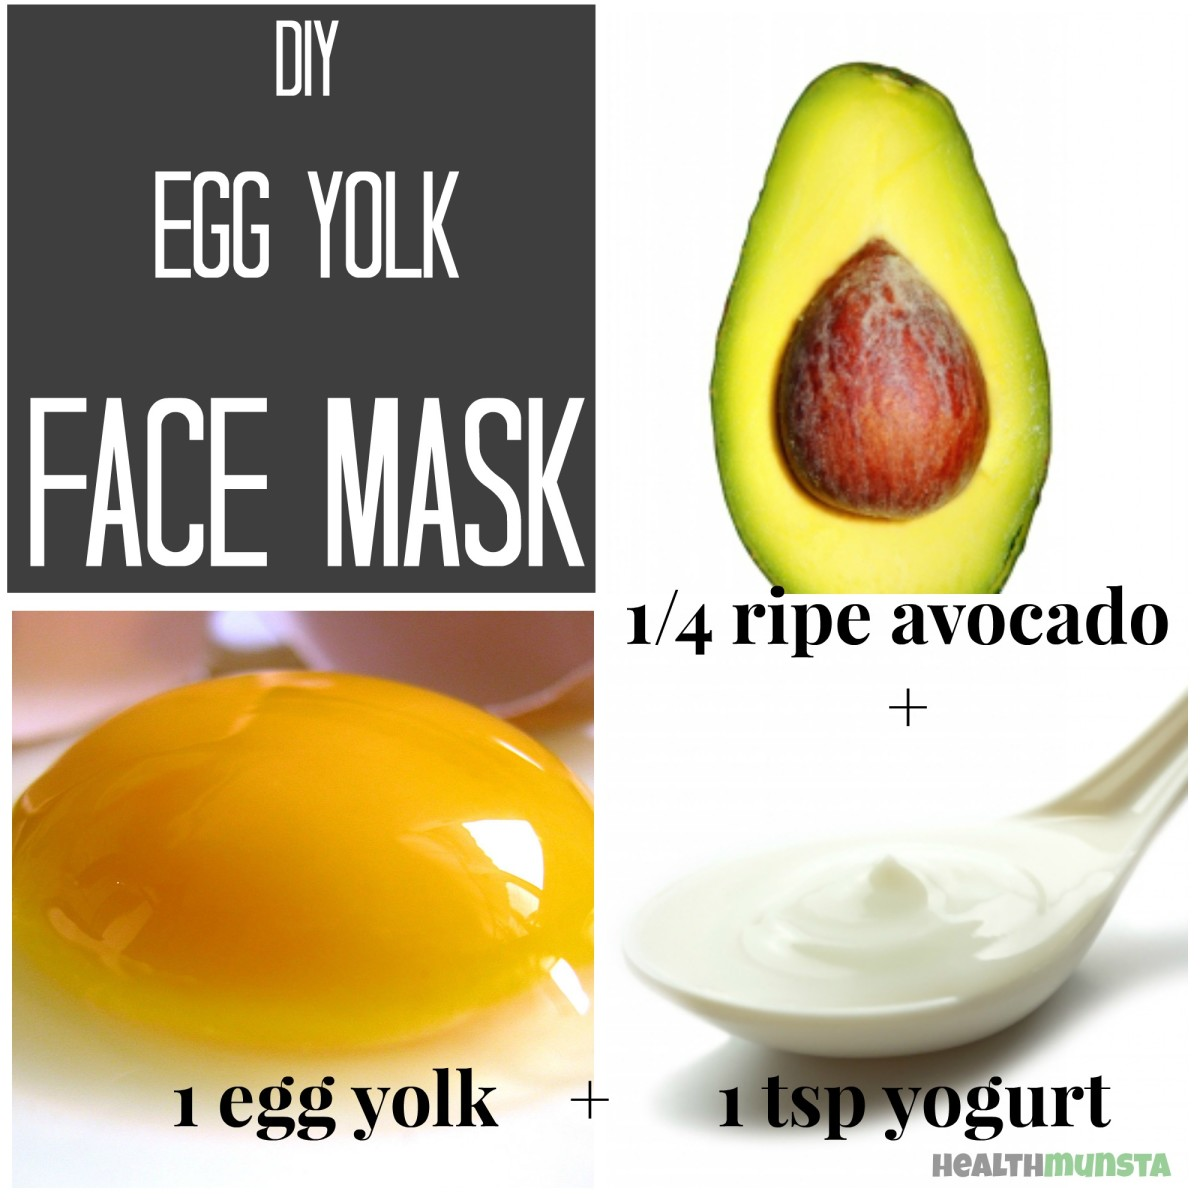 Benefits of egg yolk on face